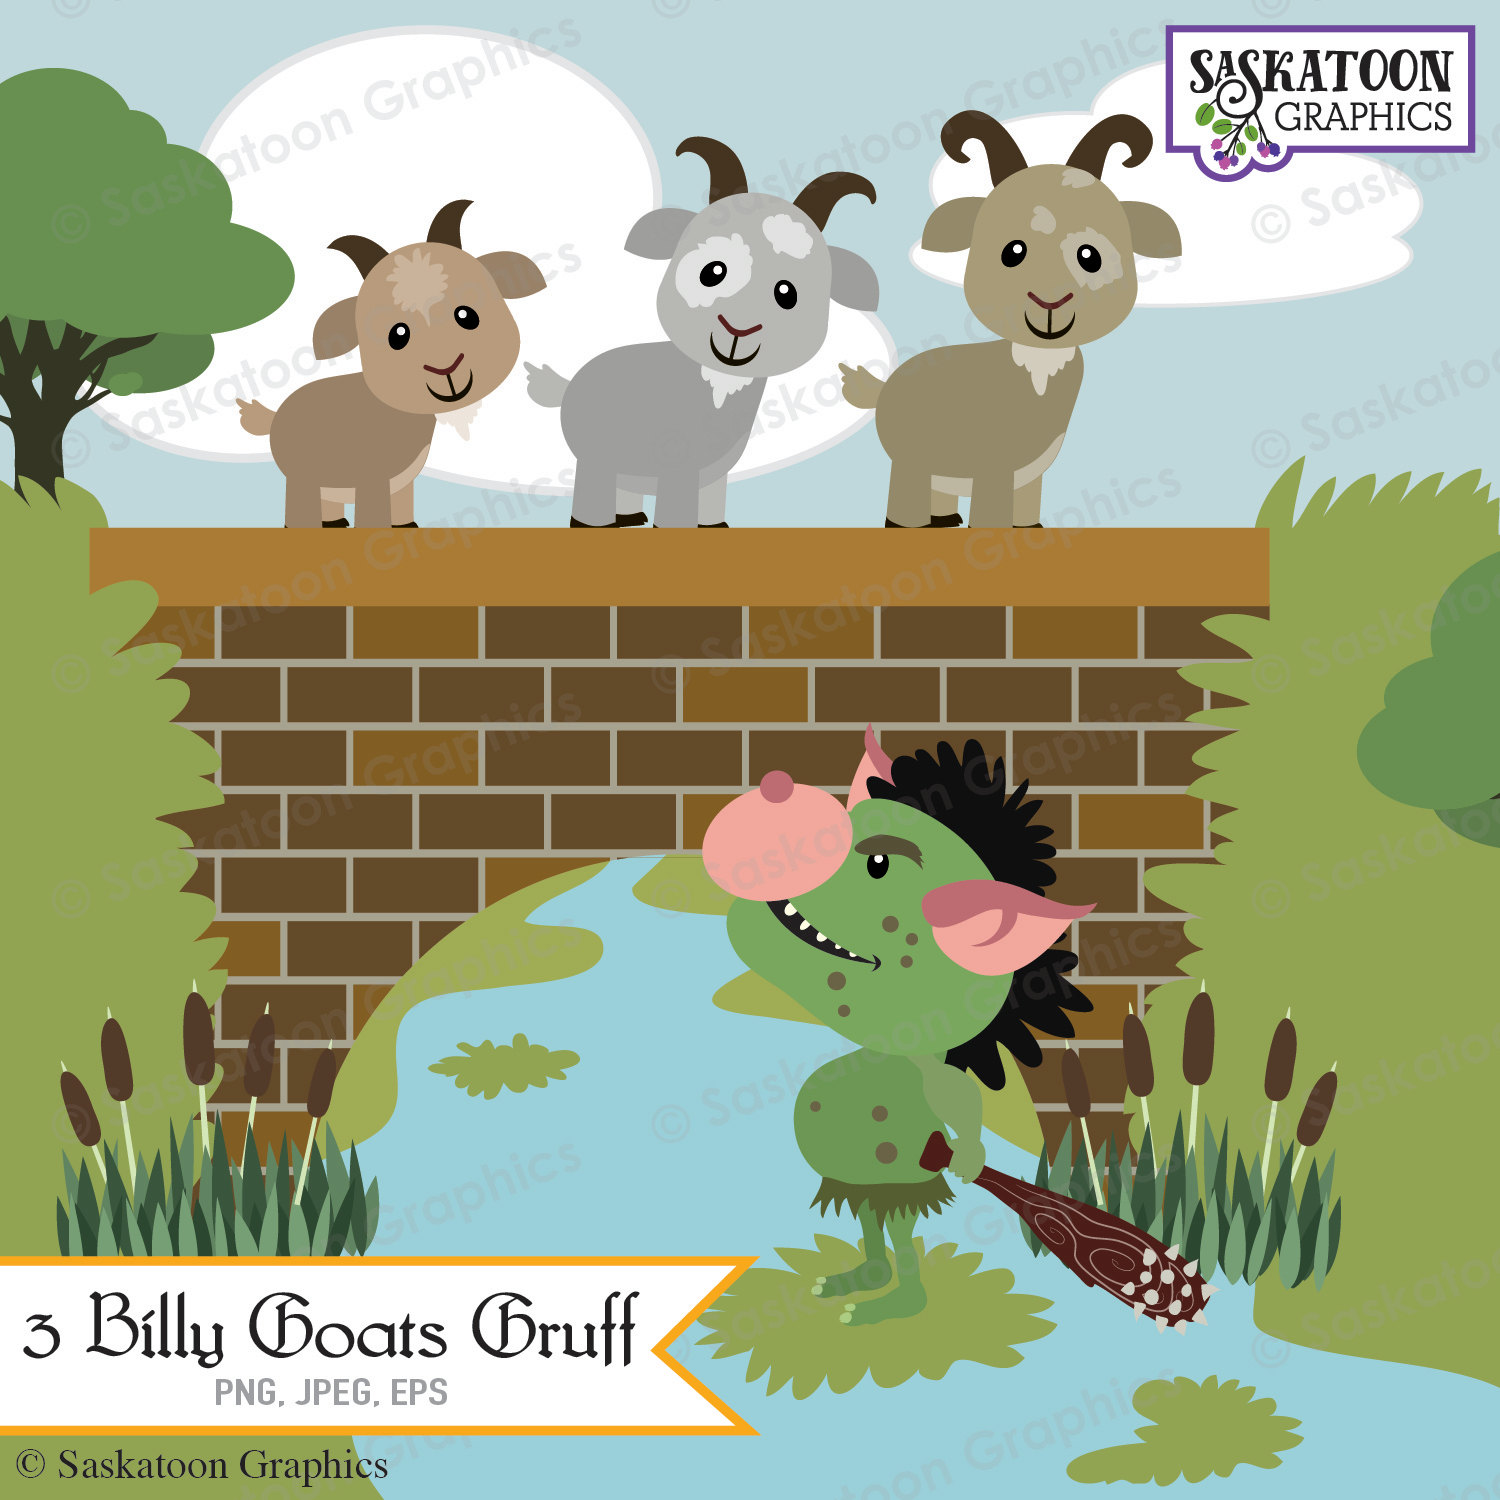 - Three Billy Goats Gruff PNG